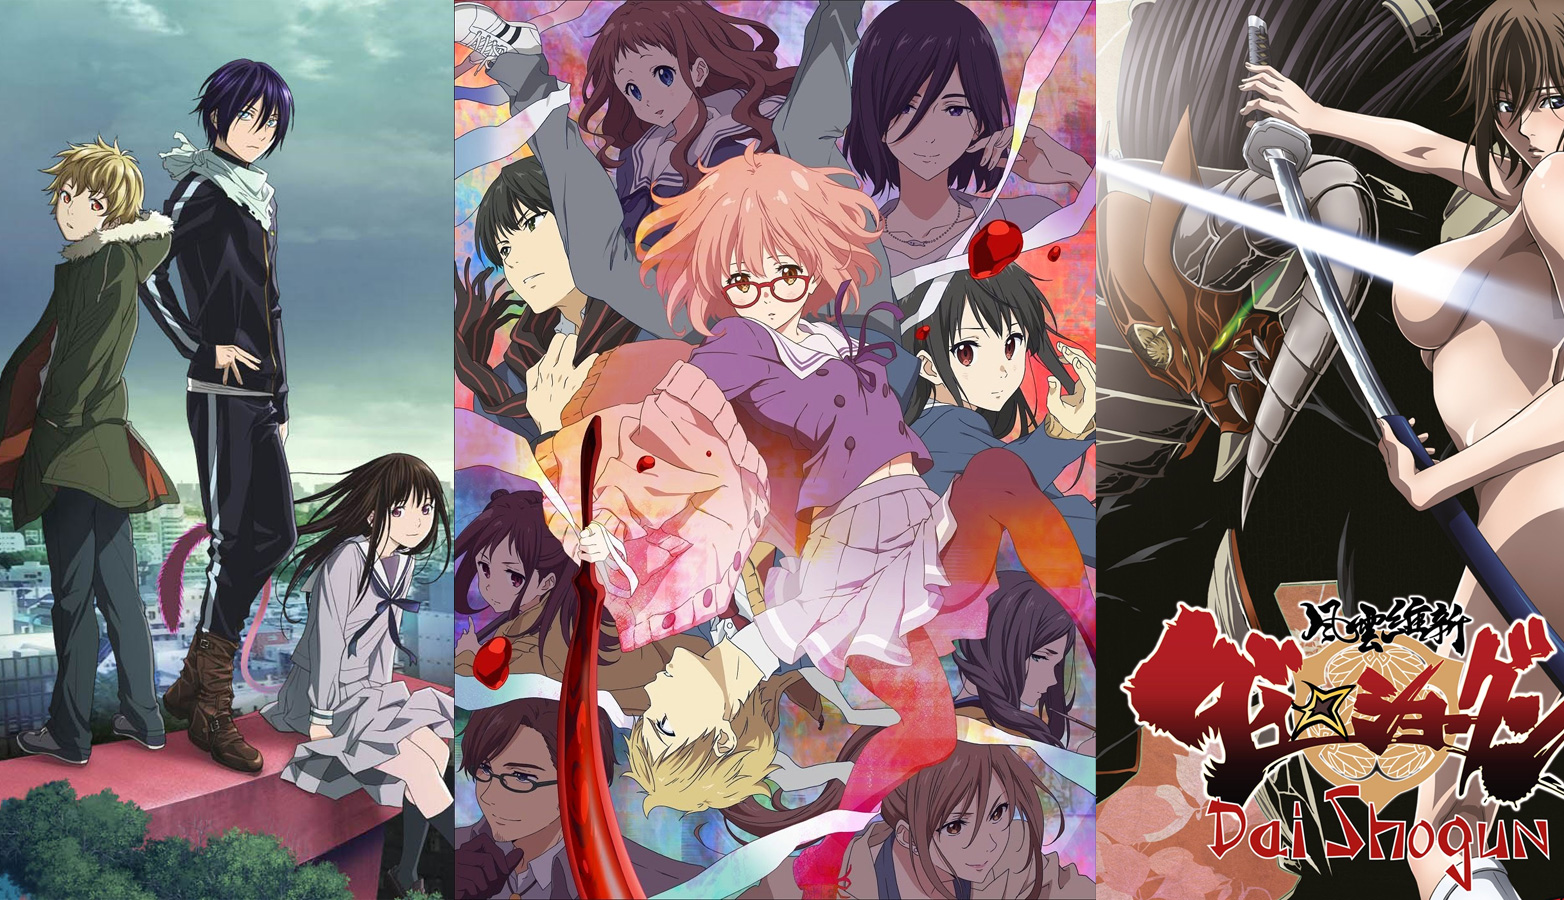 Noragami, Noir oder Beyond the Boundary – Kyokai no Kanata - Neue An